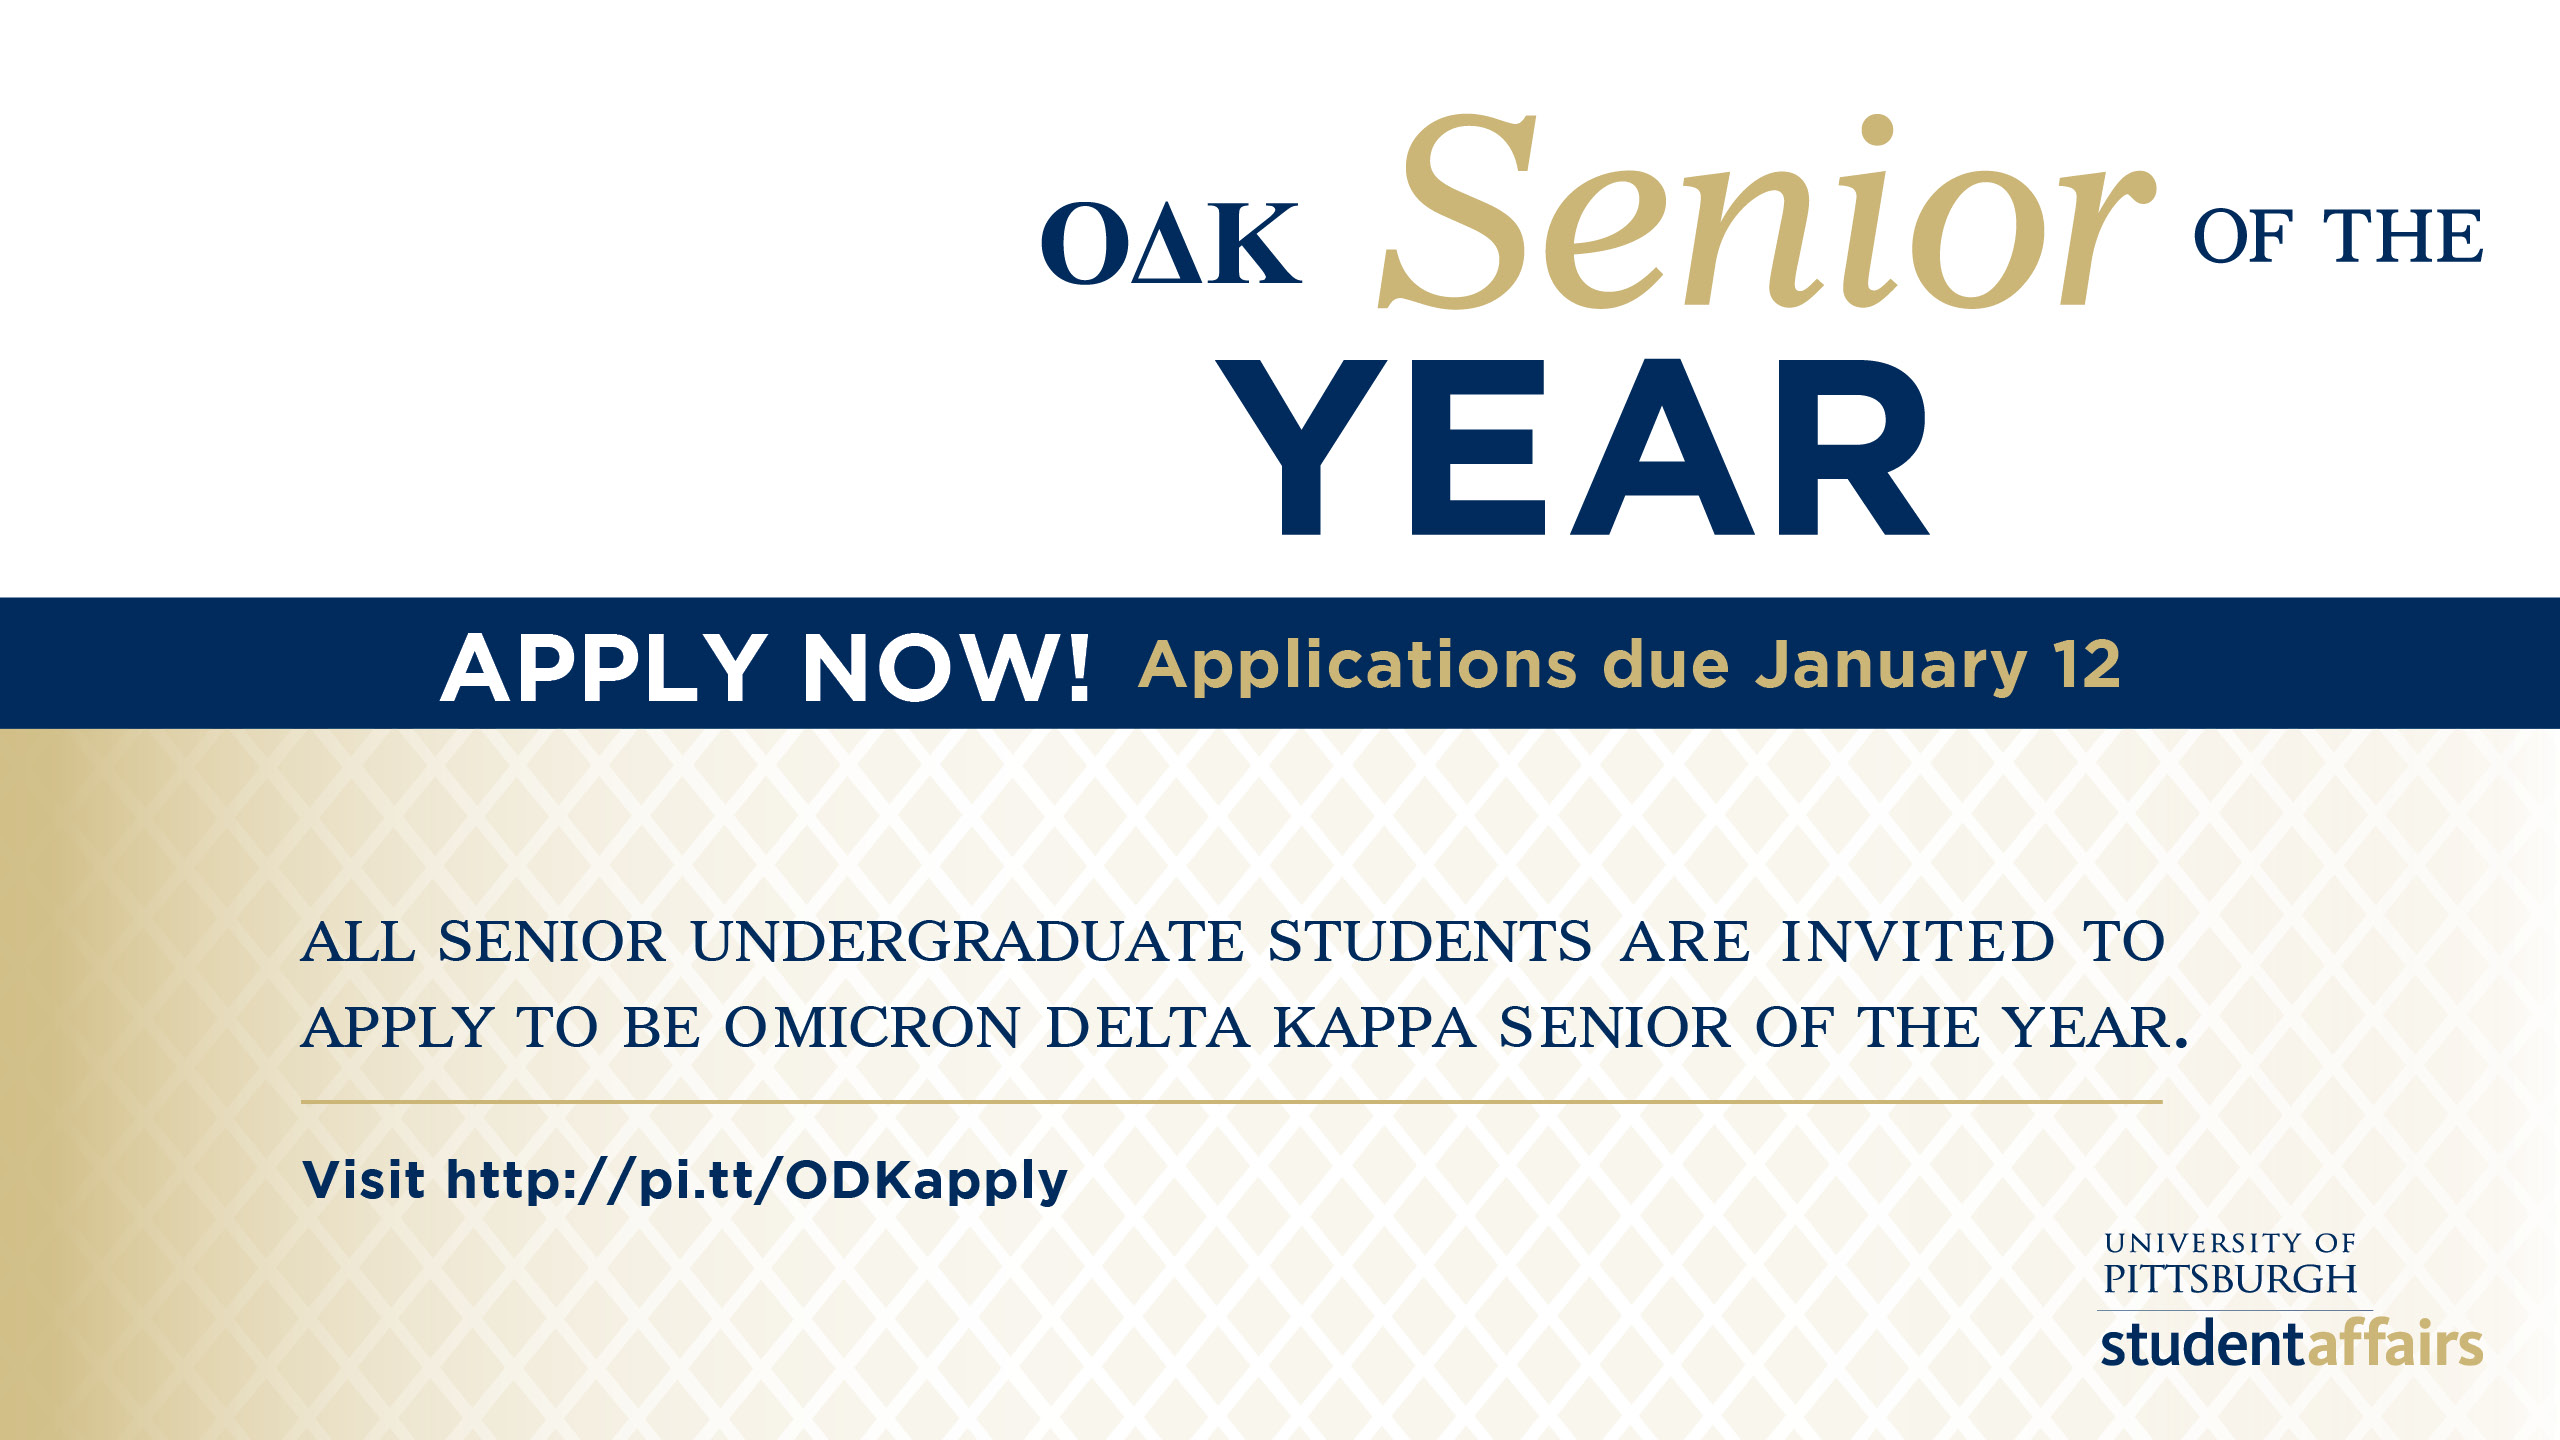 SenioroftheYear_application18_digital_Jan 12